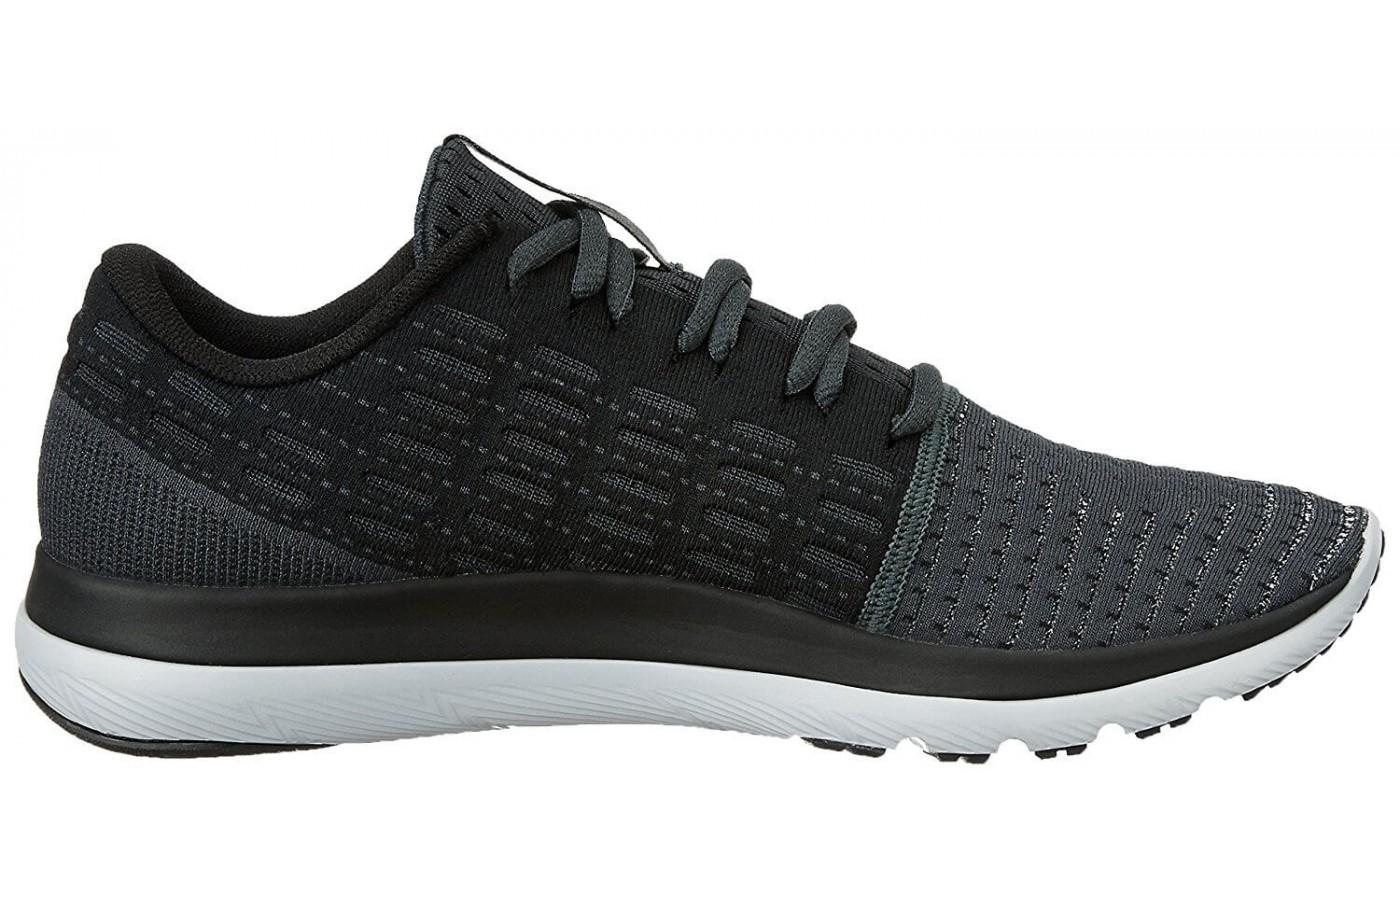 The Under Armour Threadborne Slingflex uses Dyneema fabric for durability and flexibility